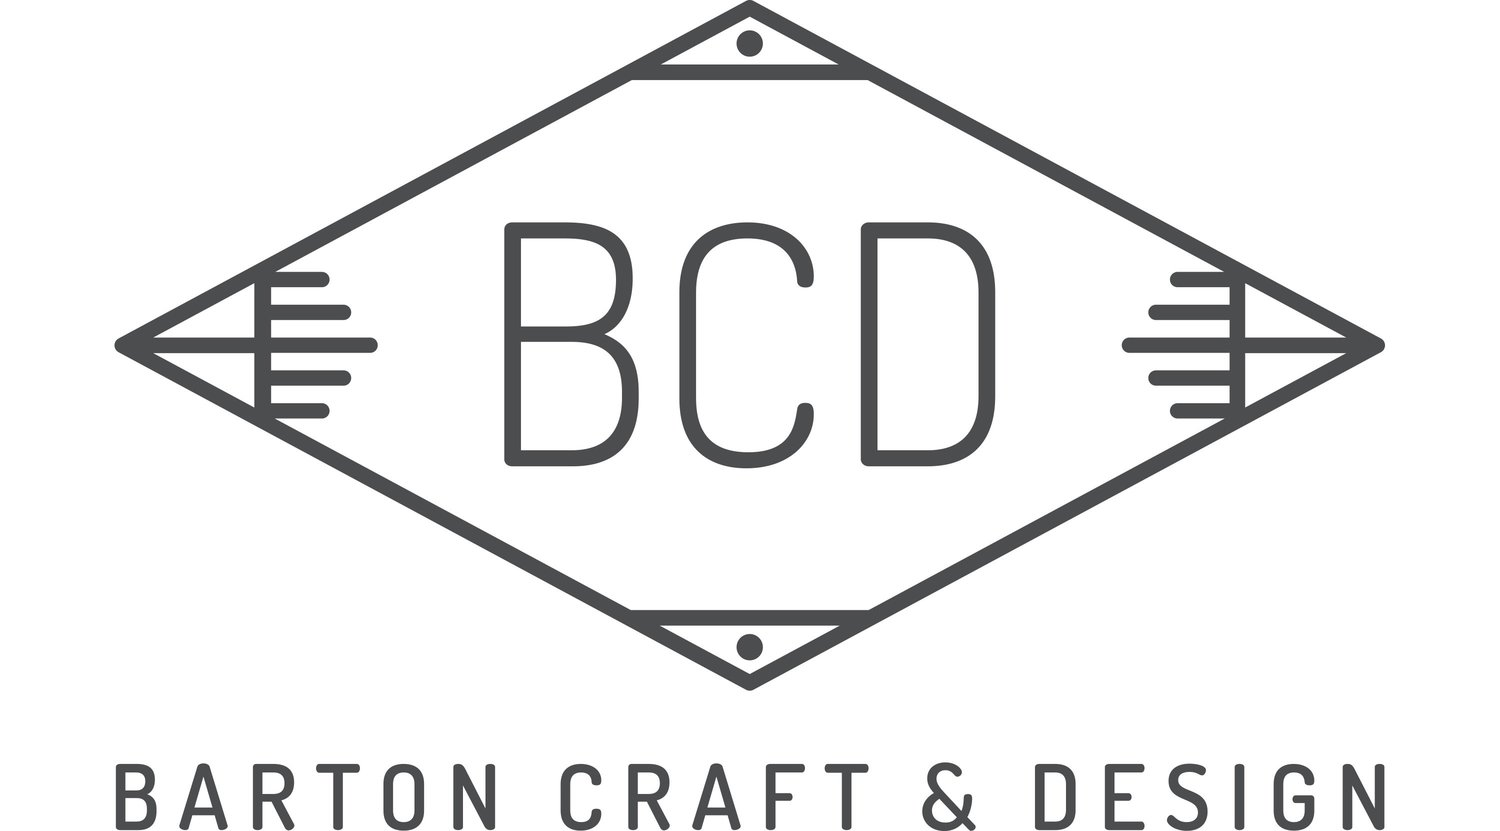 Barton Craft & Design | Handmade Fiber Art and Jewelry